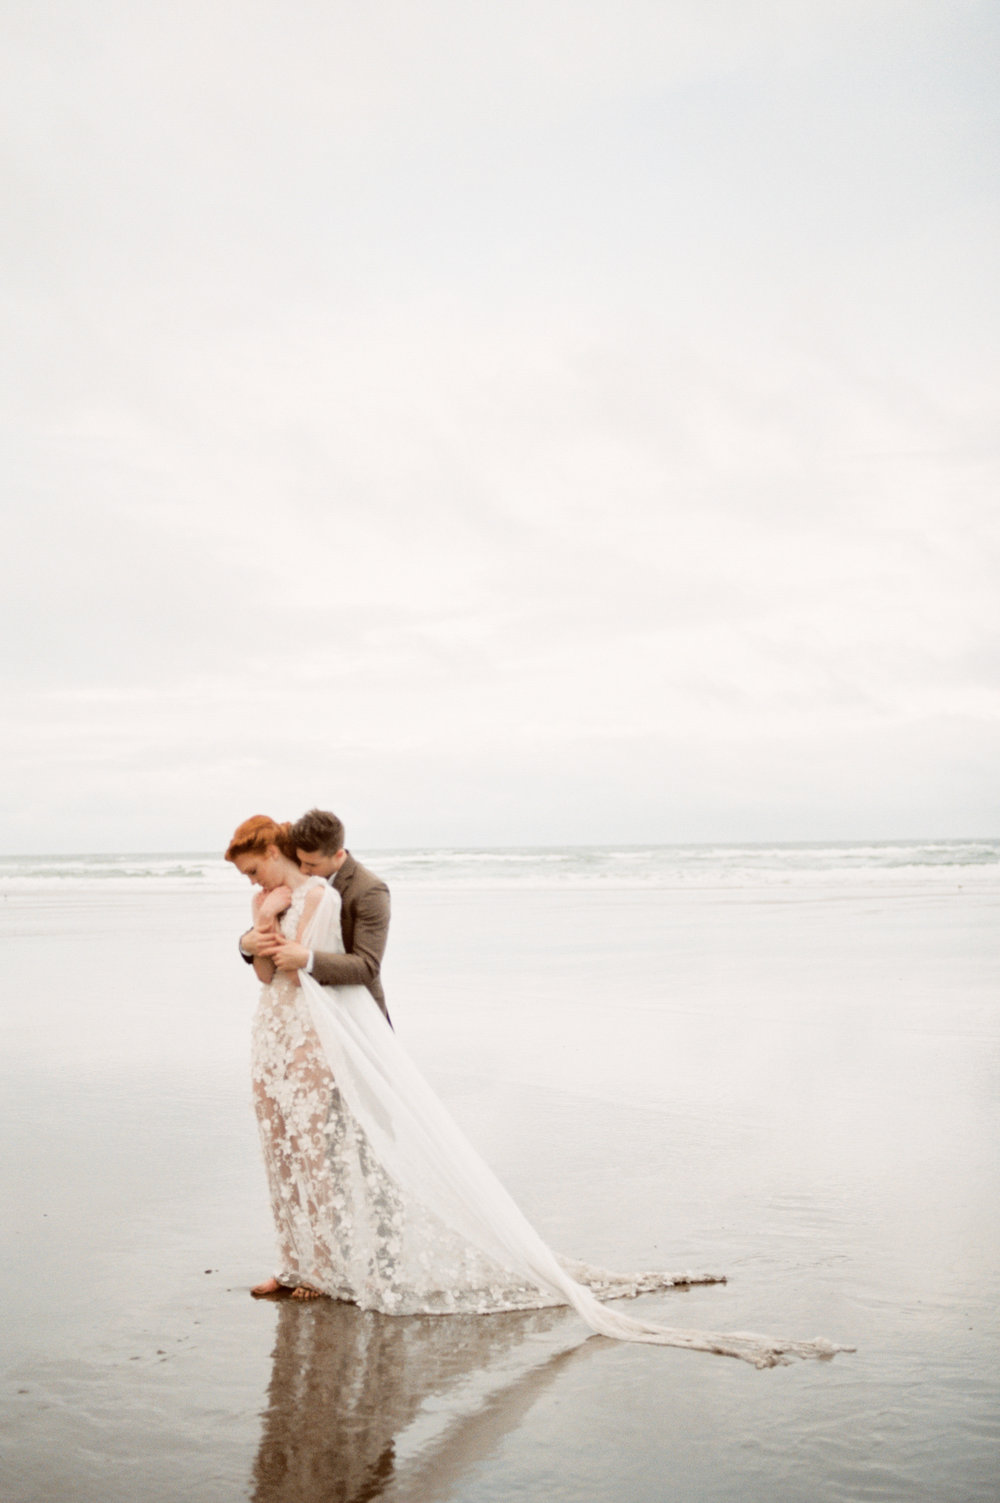 038@outlivecreative_cannon_beach_destination_wedding_photographer_&_videographer.jpg